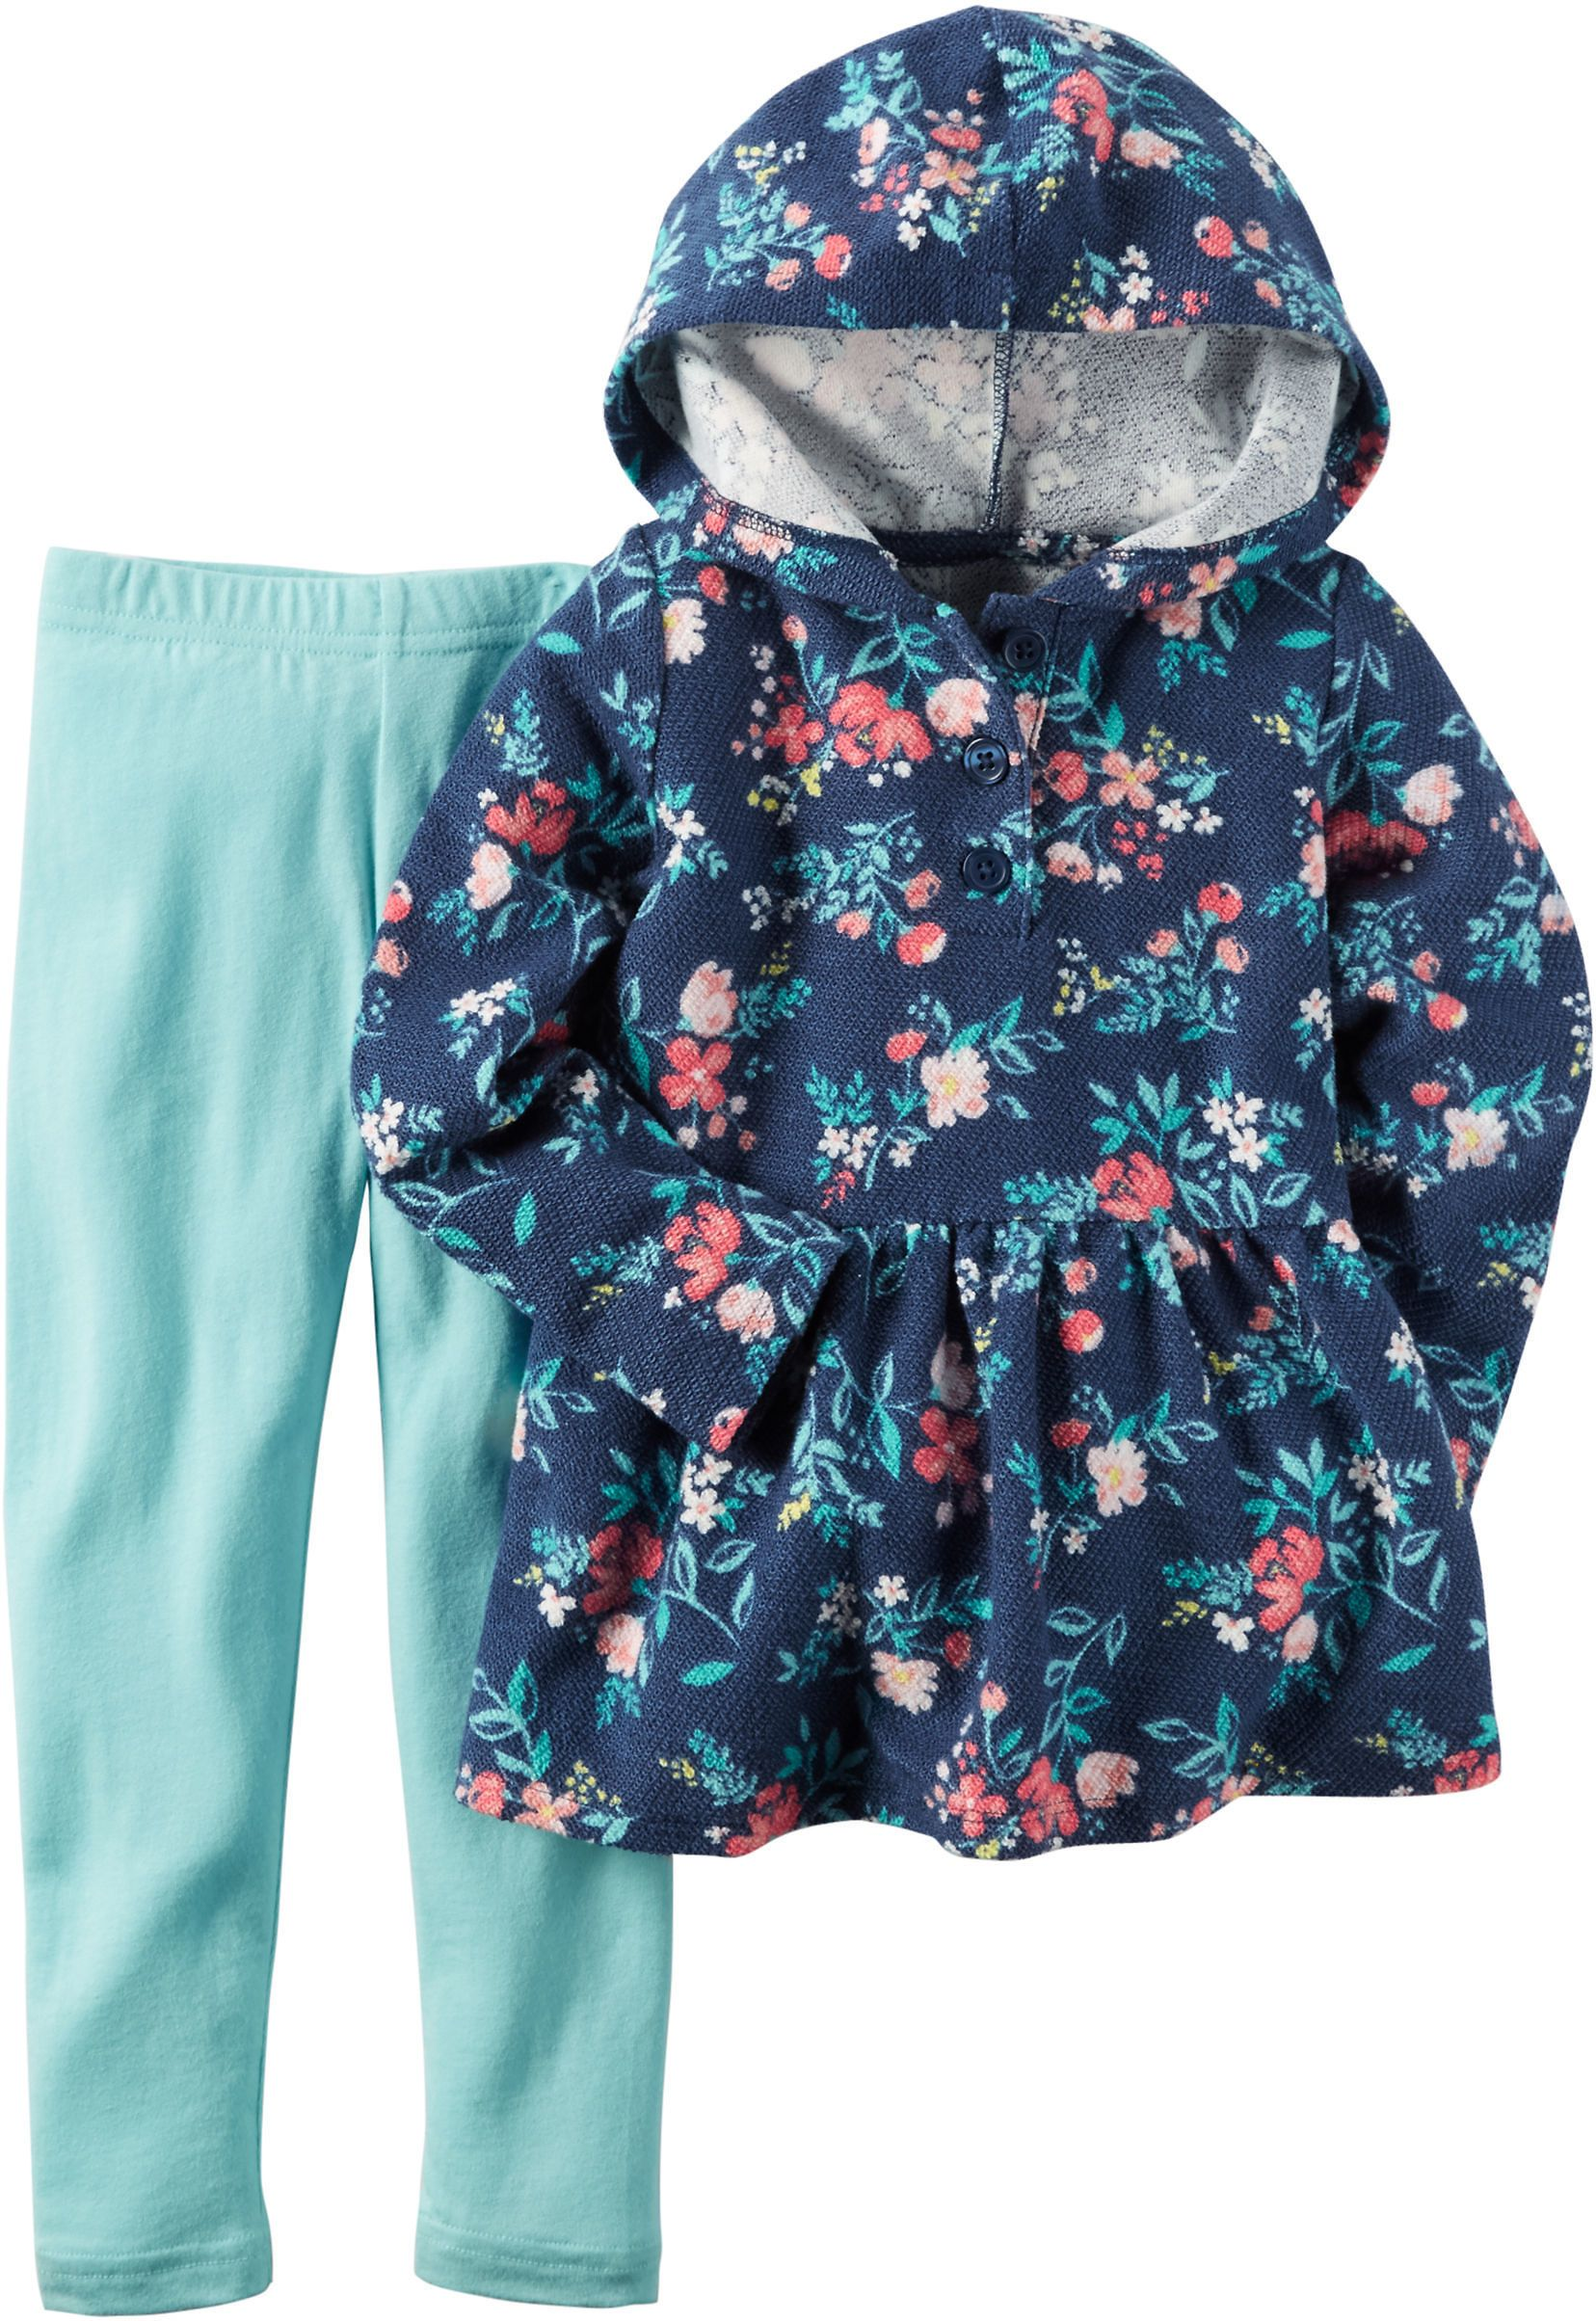 JCPenney: Carter's 2pc Outfits $7: A variety of Carter's 2-piece outfits drop from $20 to $10 to $7.50 with code… #coupons #discounts